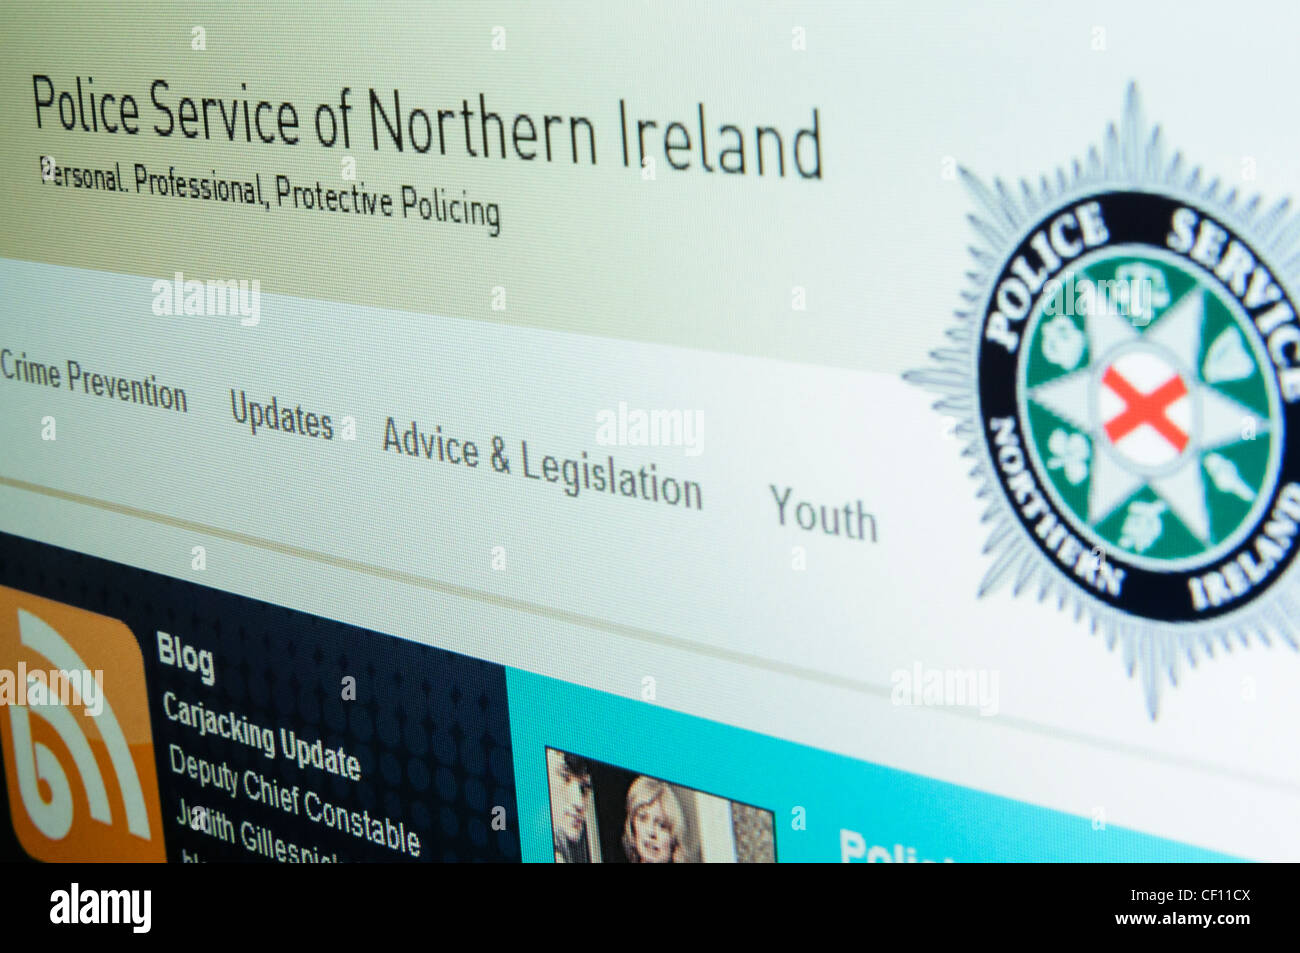 Police Service for Northern Ireland website - Stock Image